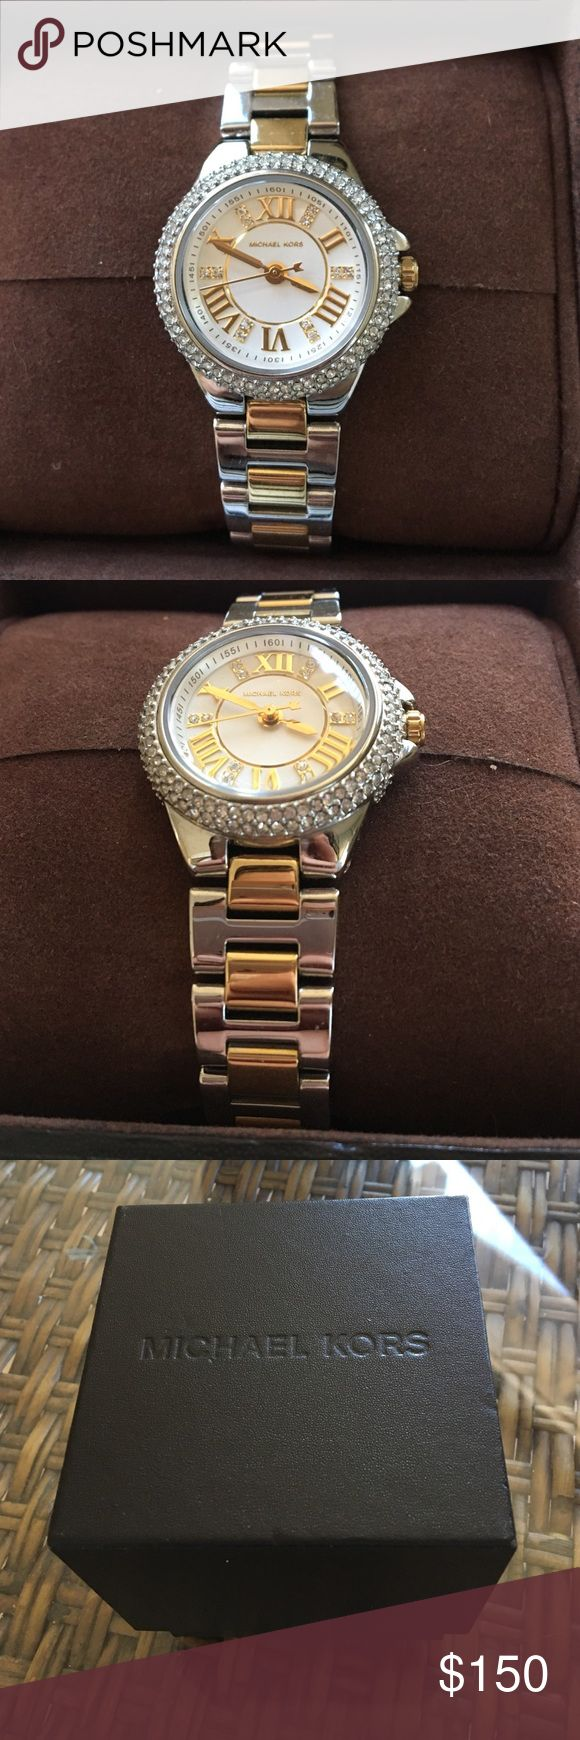 New Michael Kors Watch New with tags silver and gold Michael Kors watch. This watch has rhinestones incrusted around the face and within the watch face. The wristband has gold in the center of the band and silver on the outside. Michael Kors Accessories Watches